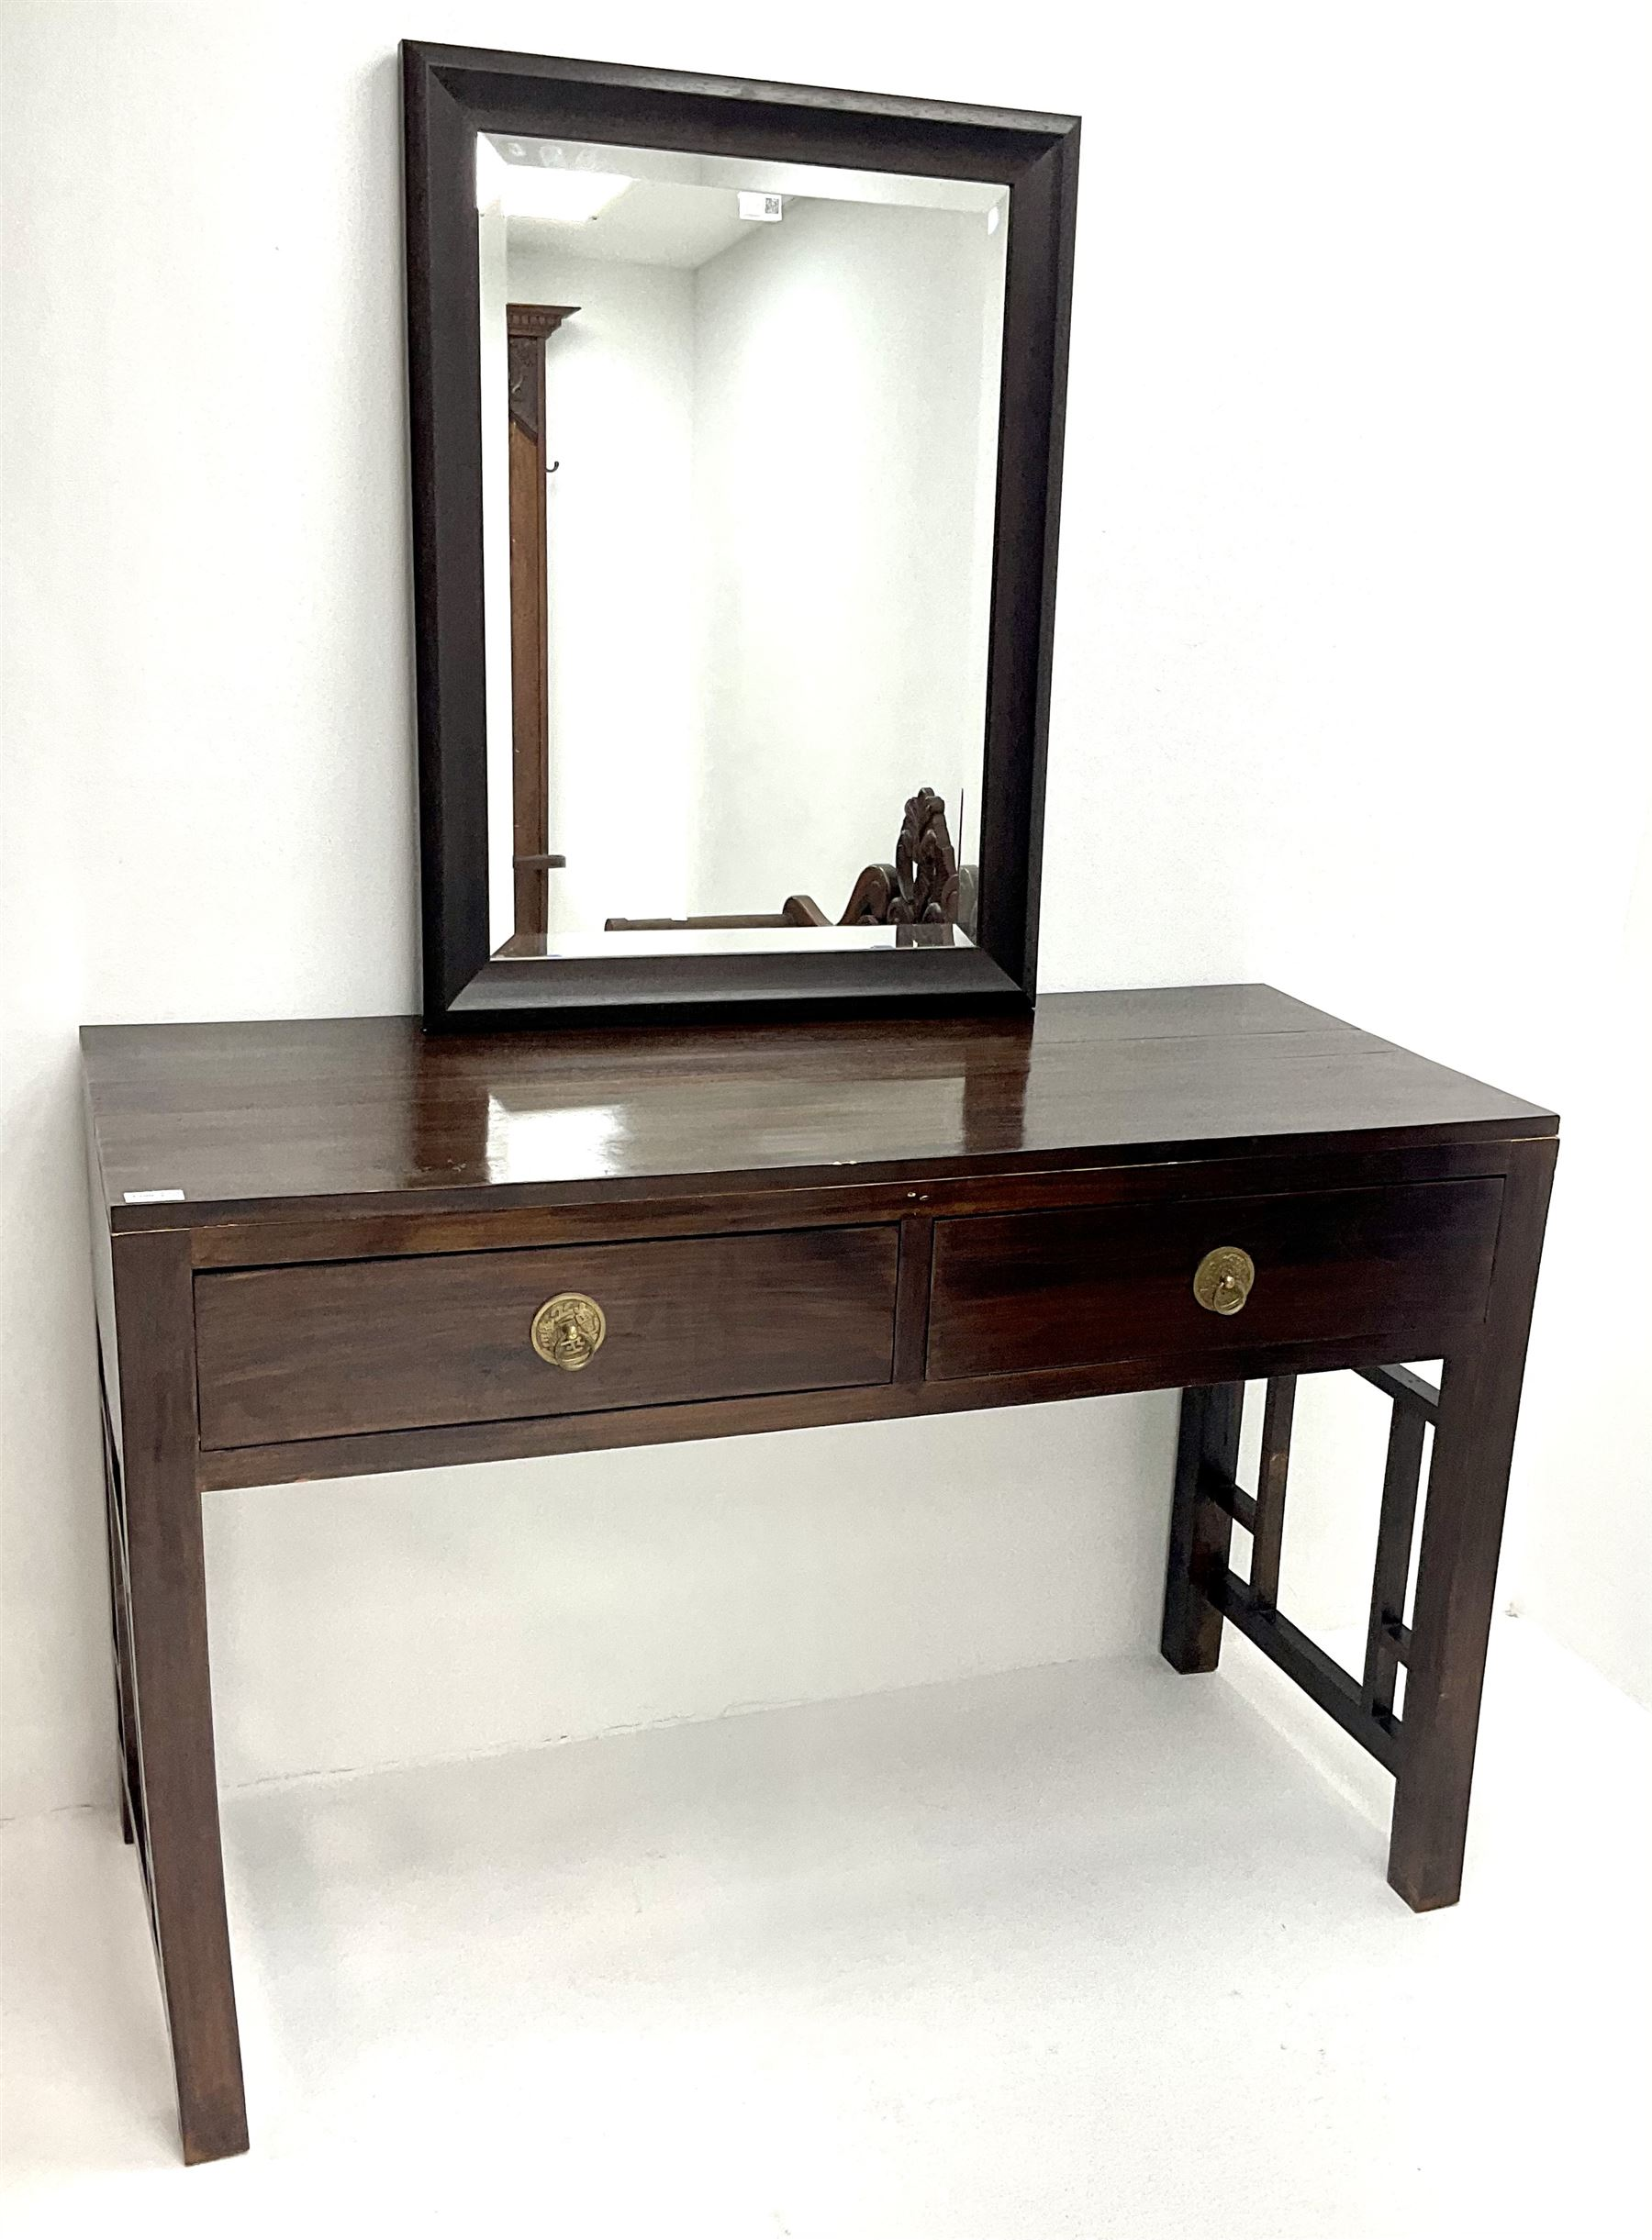 Hardwood console table - Image 2 of 2